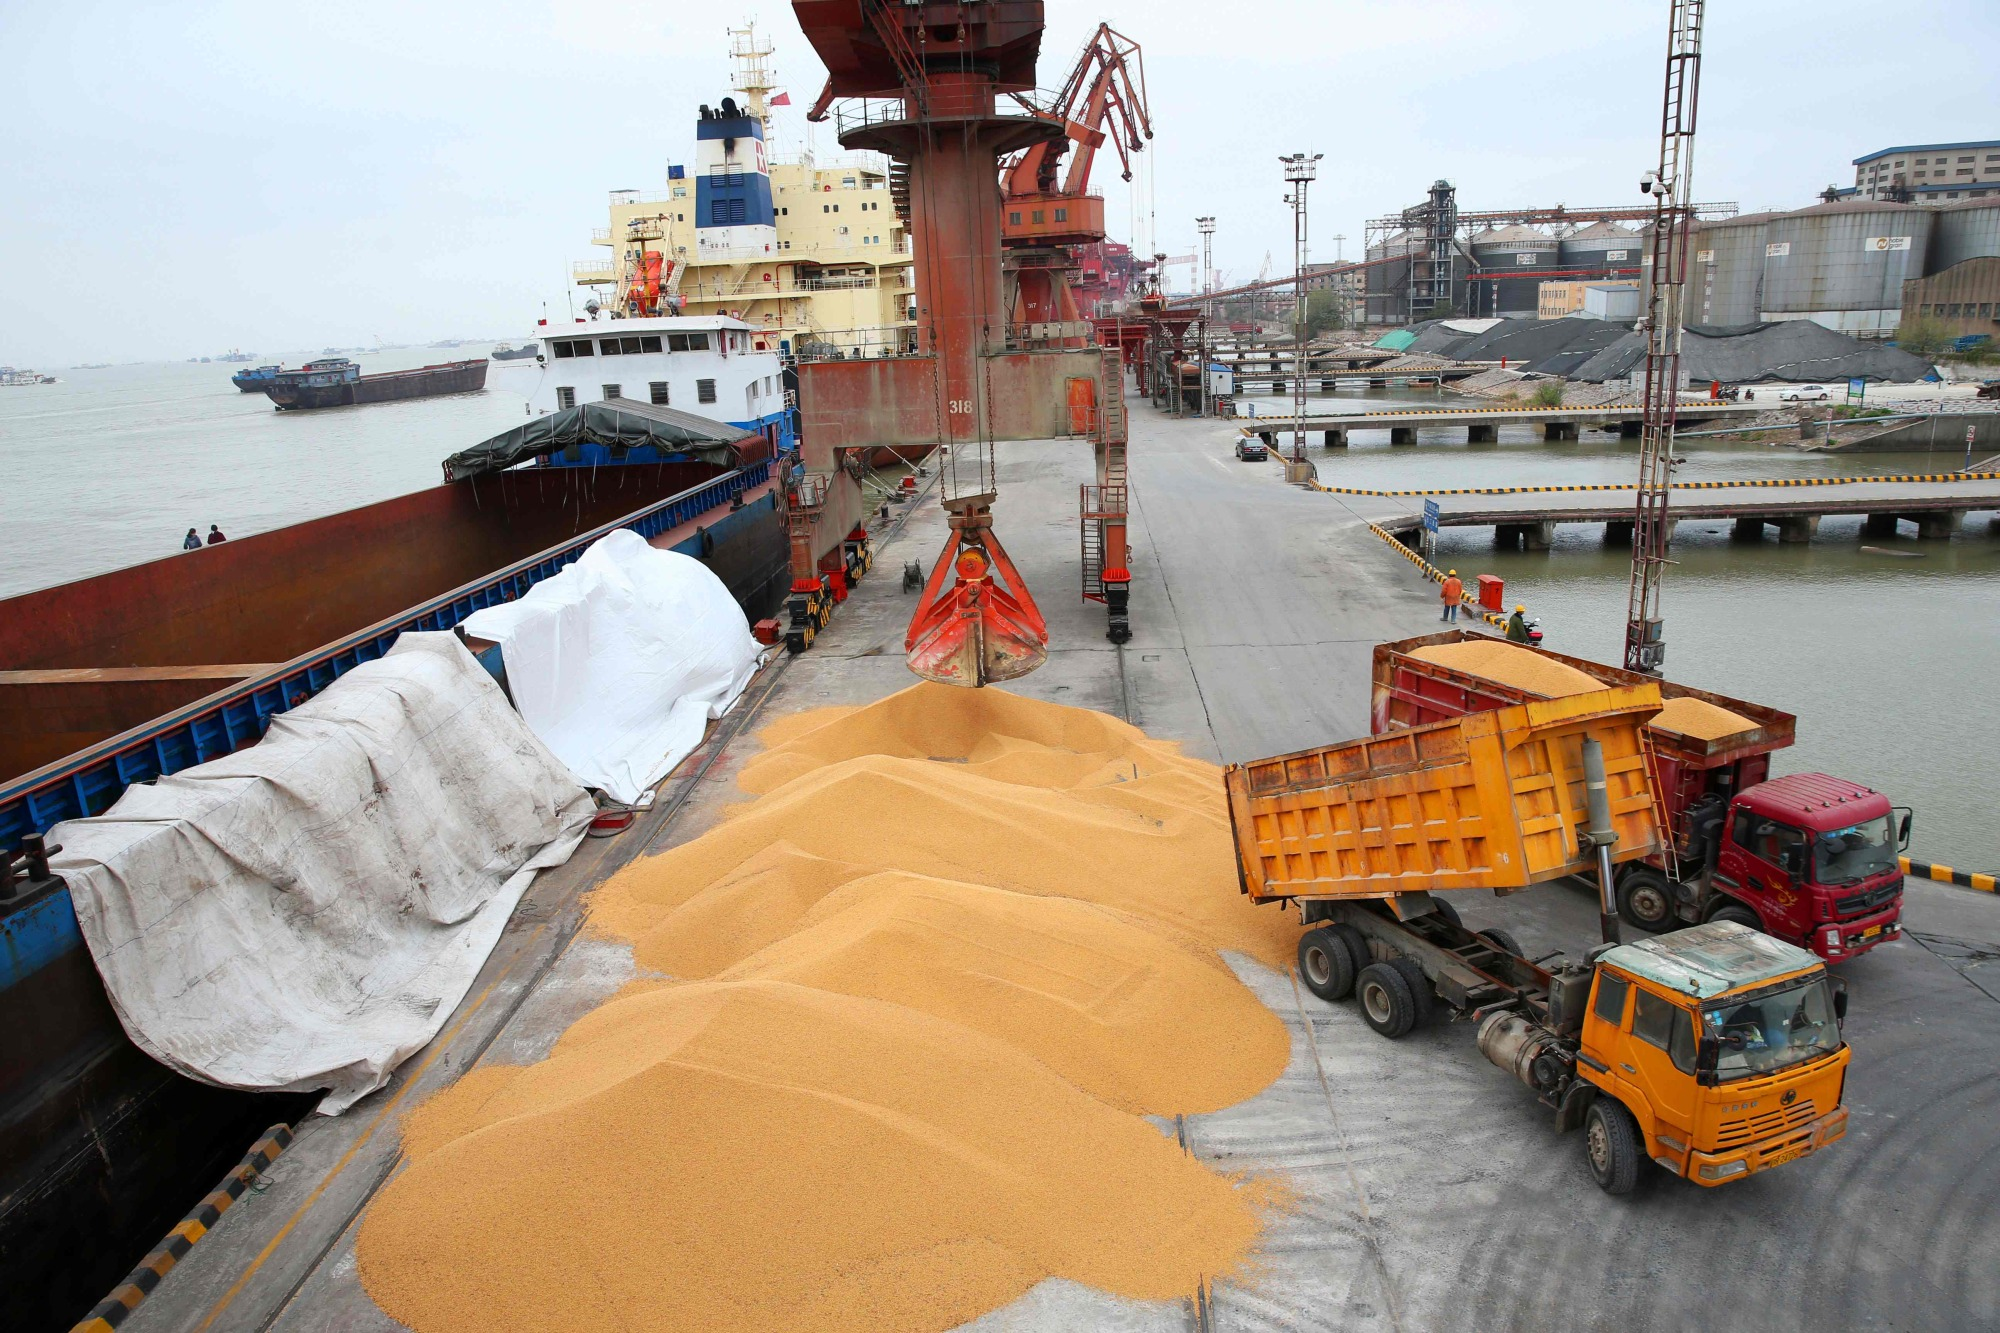 Workers load imported soybeans onto trucks at a port in Nantong in China's eastern Jiangsu province on Wednesday. China unveiled plans Wednesday to hit major U.S. exports worth $50 billion, such as soybeans, cars and small airplanes, with retaliatory tariffs in an escalating trade duel between the world's two top economies. | AFP-JIJI